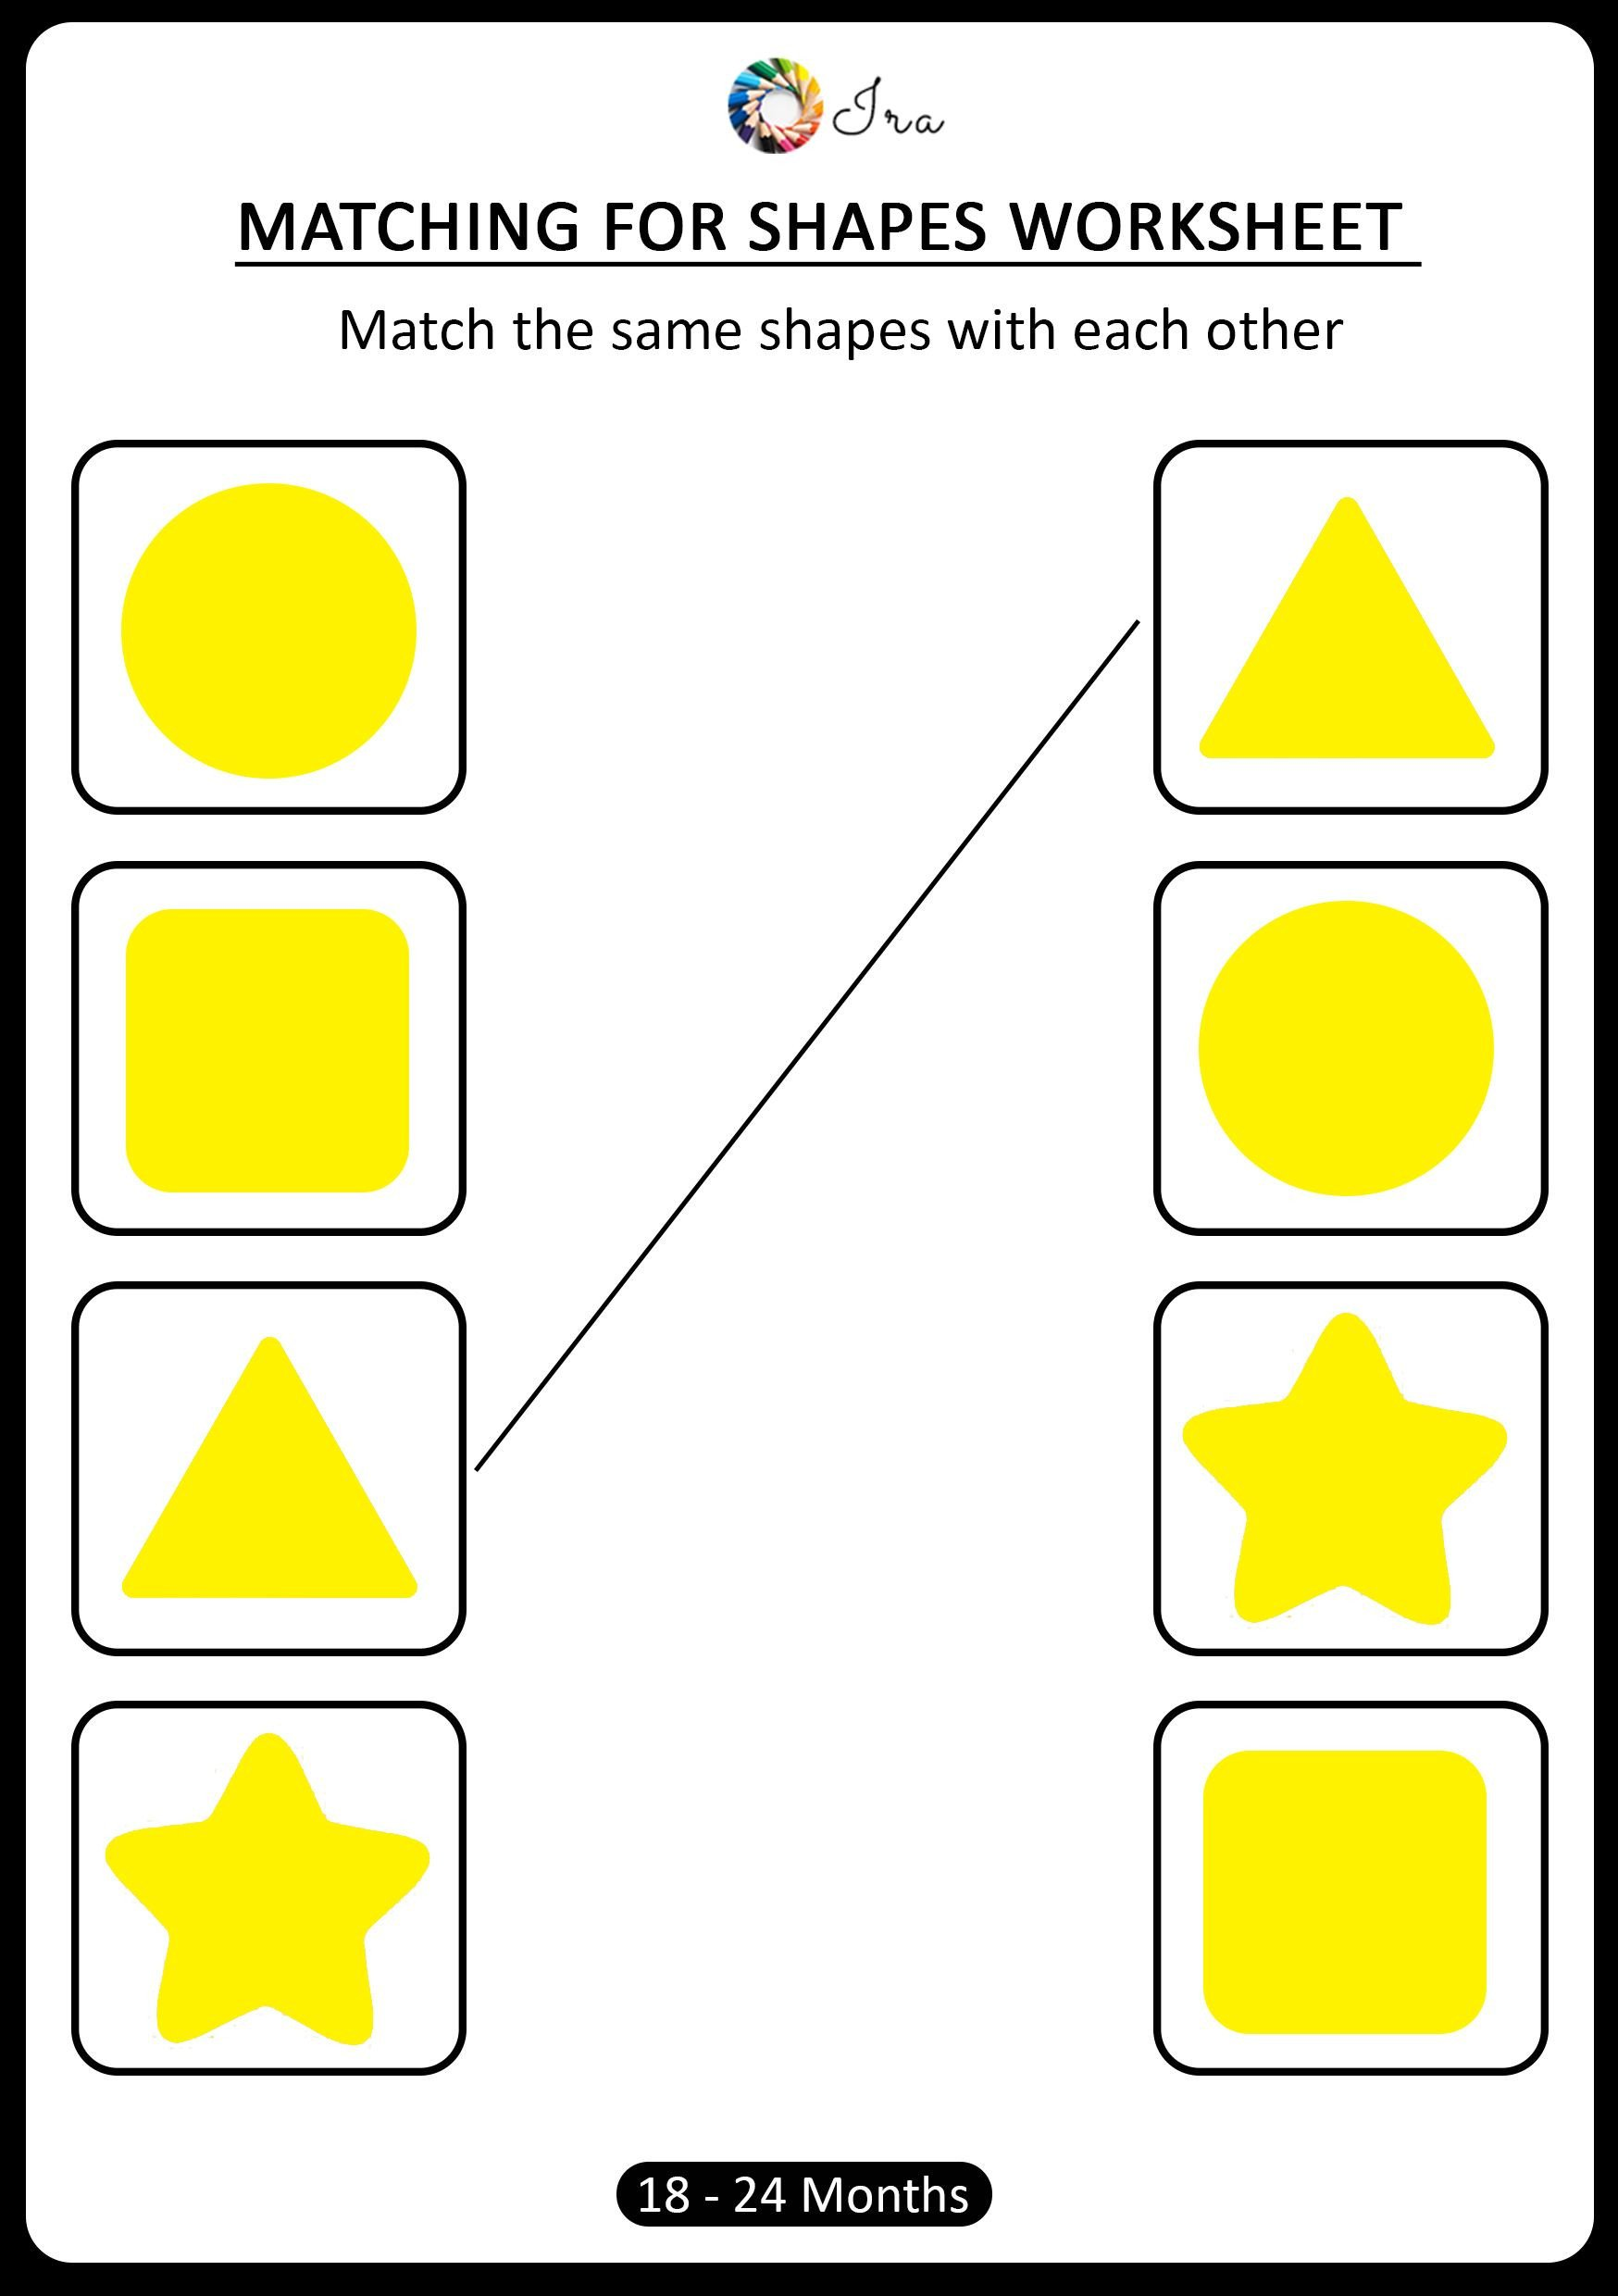 Early Childhood Worksheets Pin On [18 24 Months] Matching for Shapes Worksheets for Kids